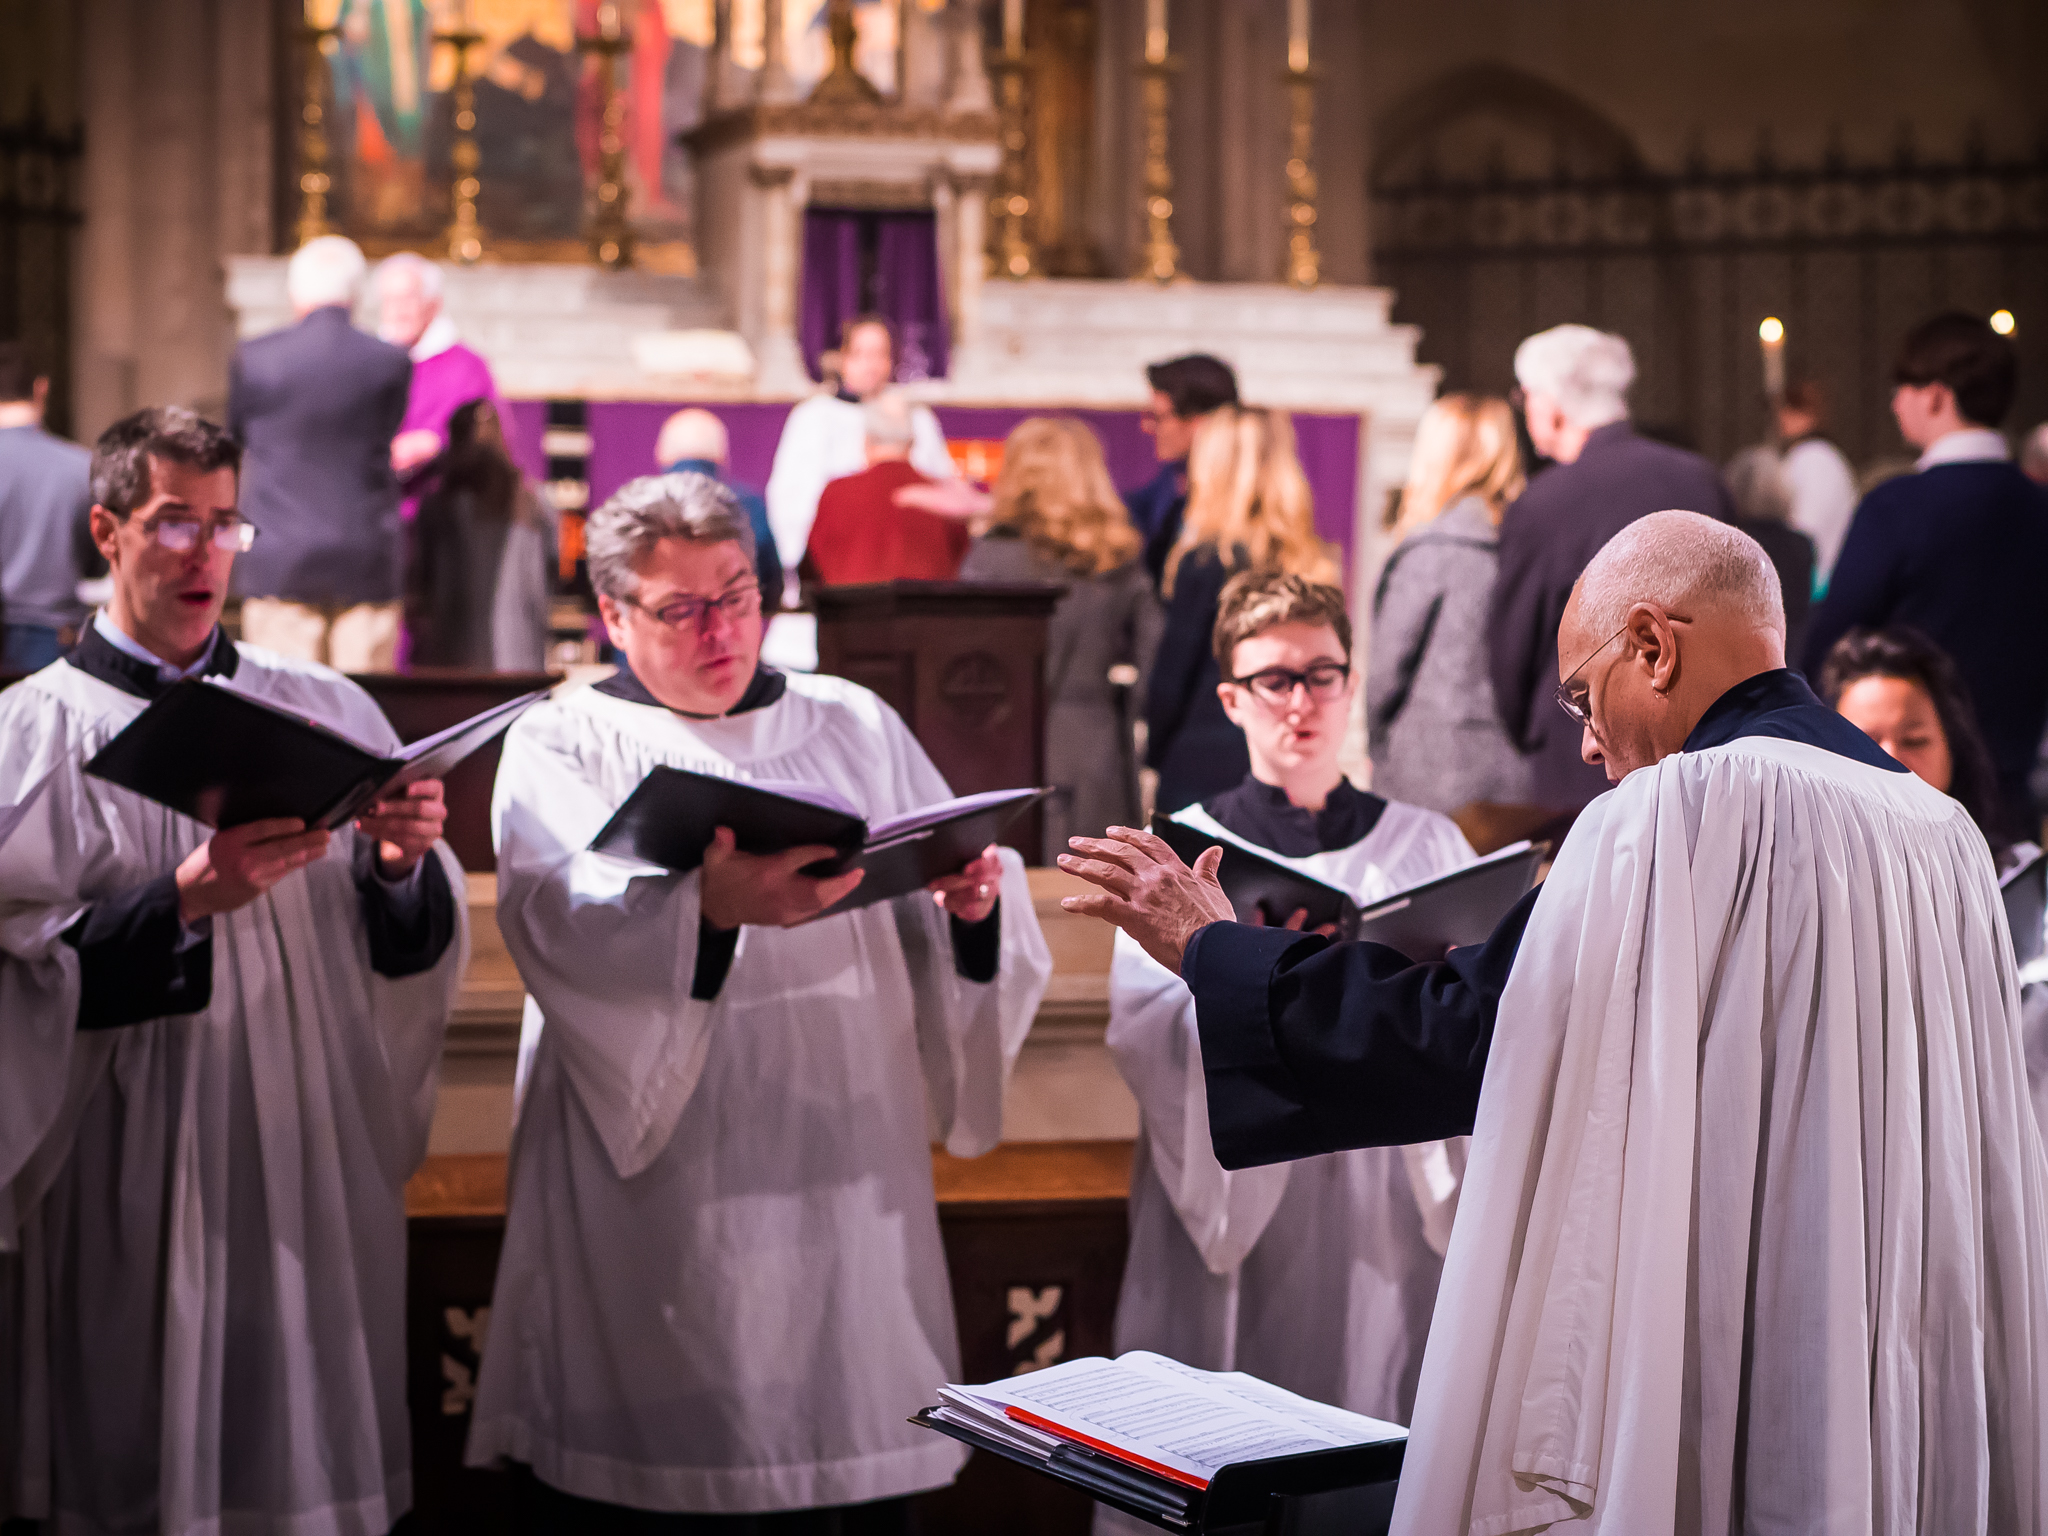 A motet is sung in front of the chancel during the ministration of Communion.   Photo by Ricardo Gomez